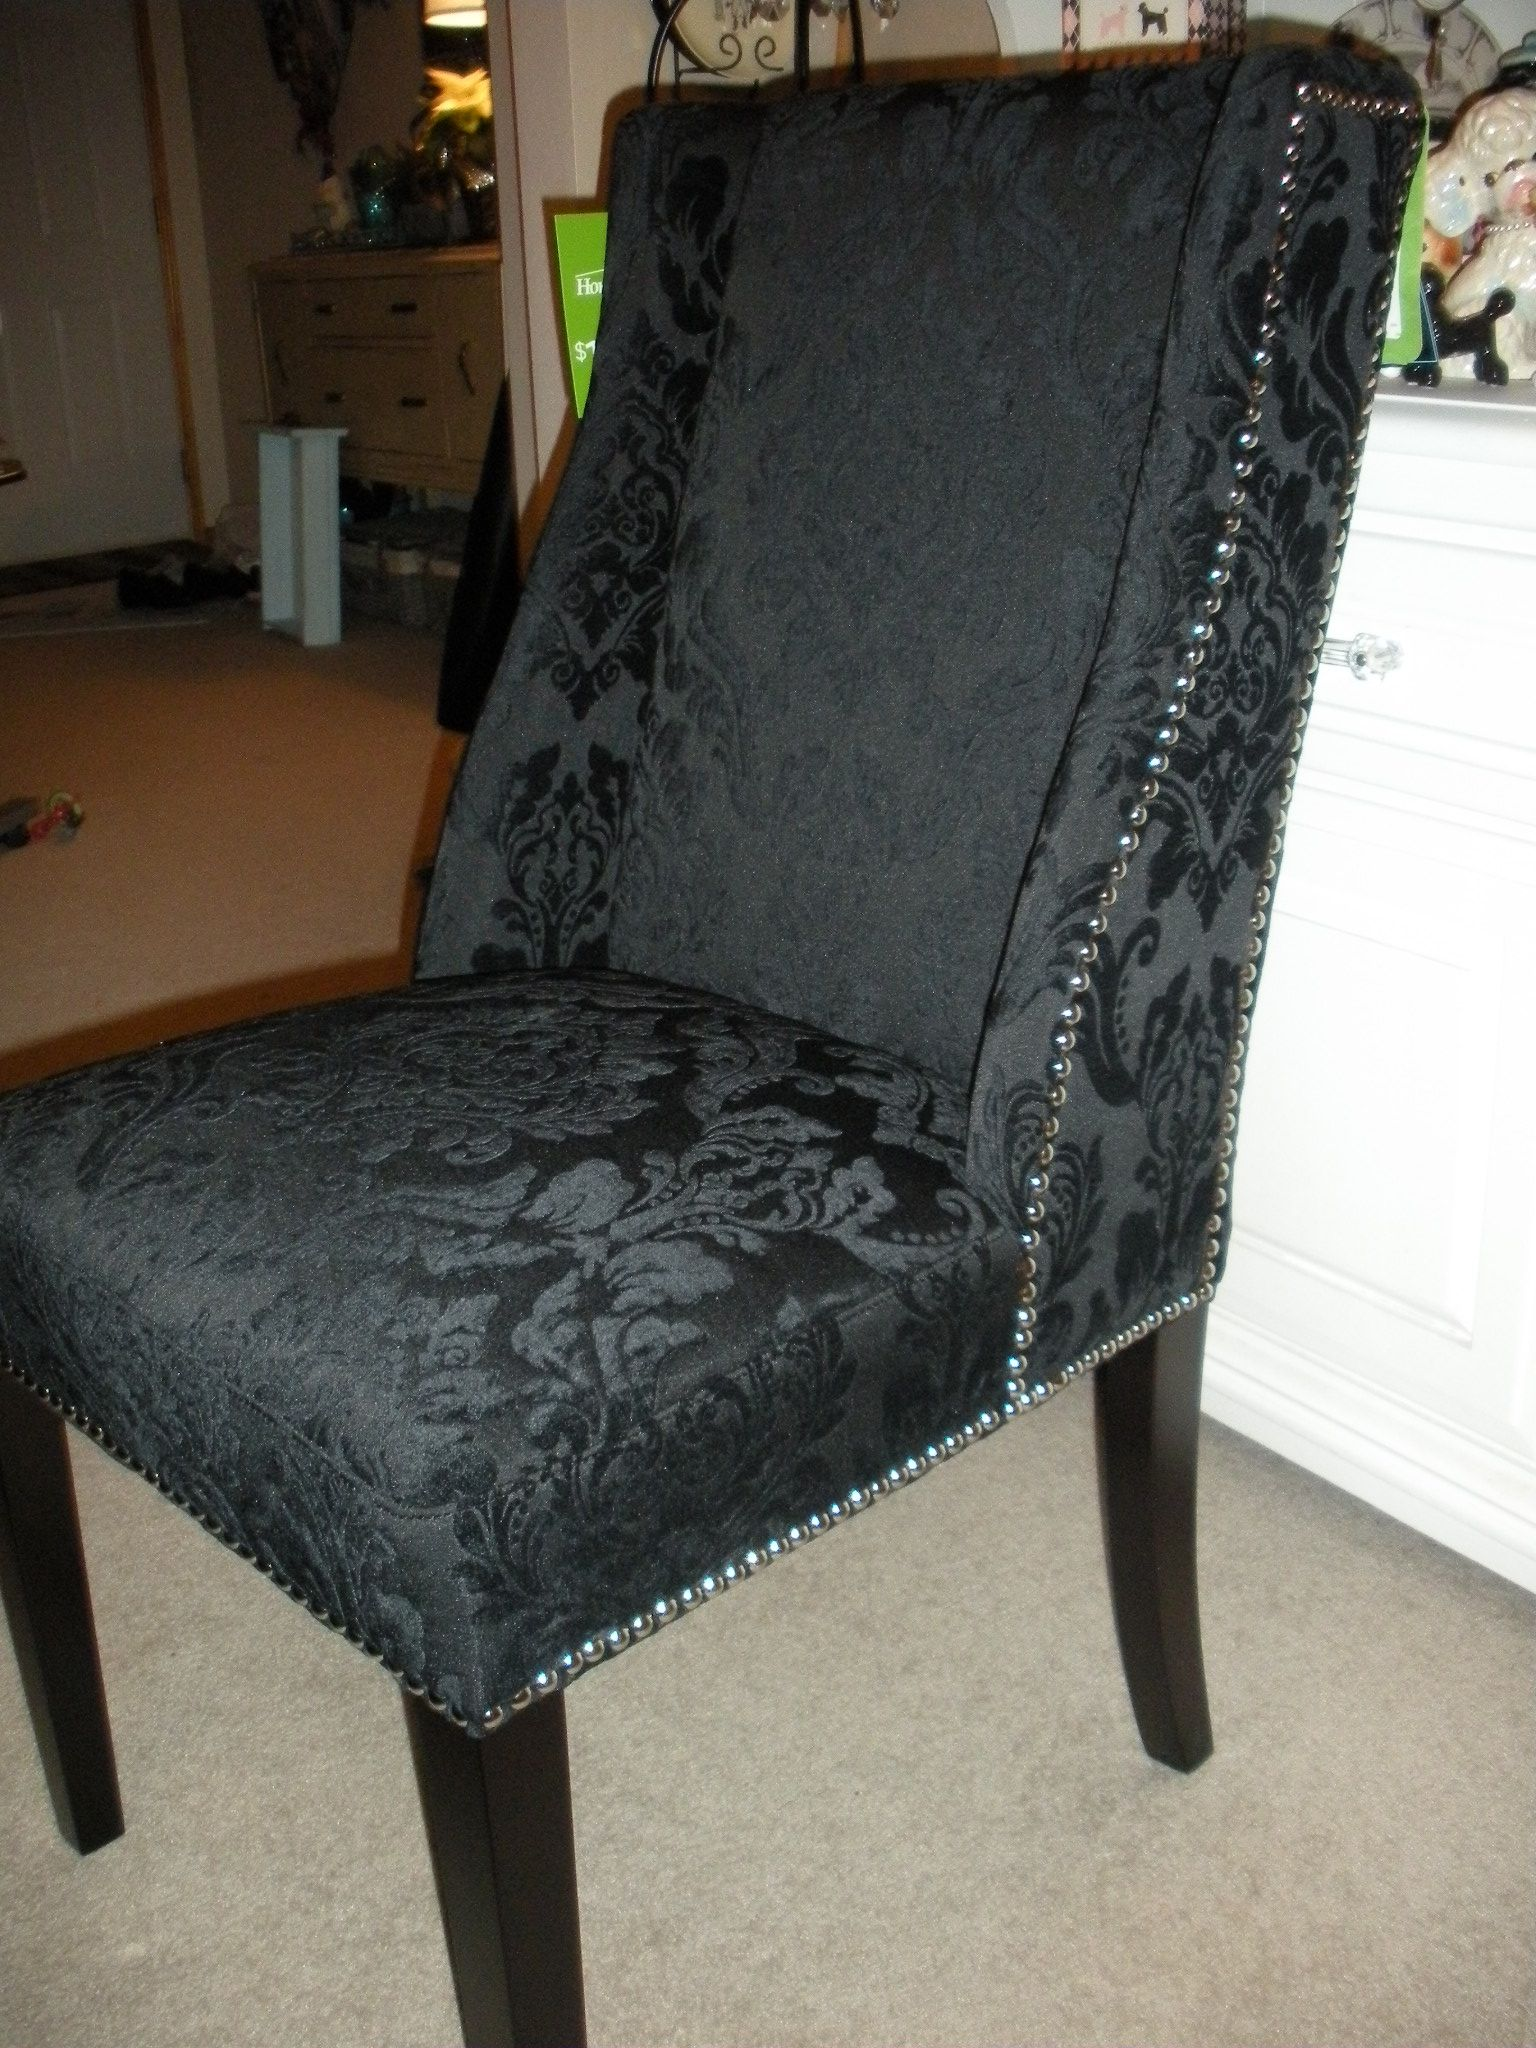 Damask Dining Chair Found Two Cynthia Rowley Black Damask Dining Chairs With Silver